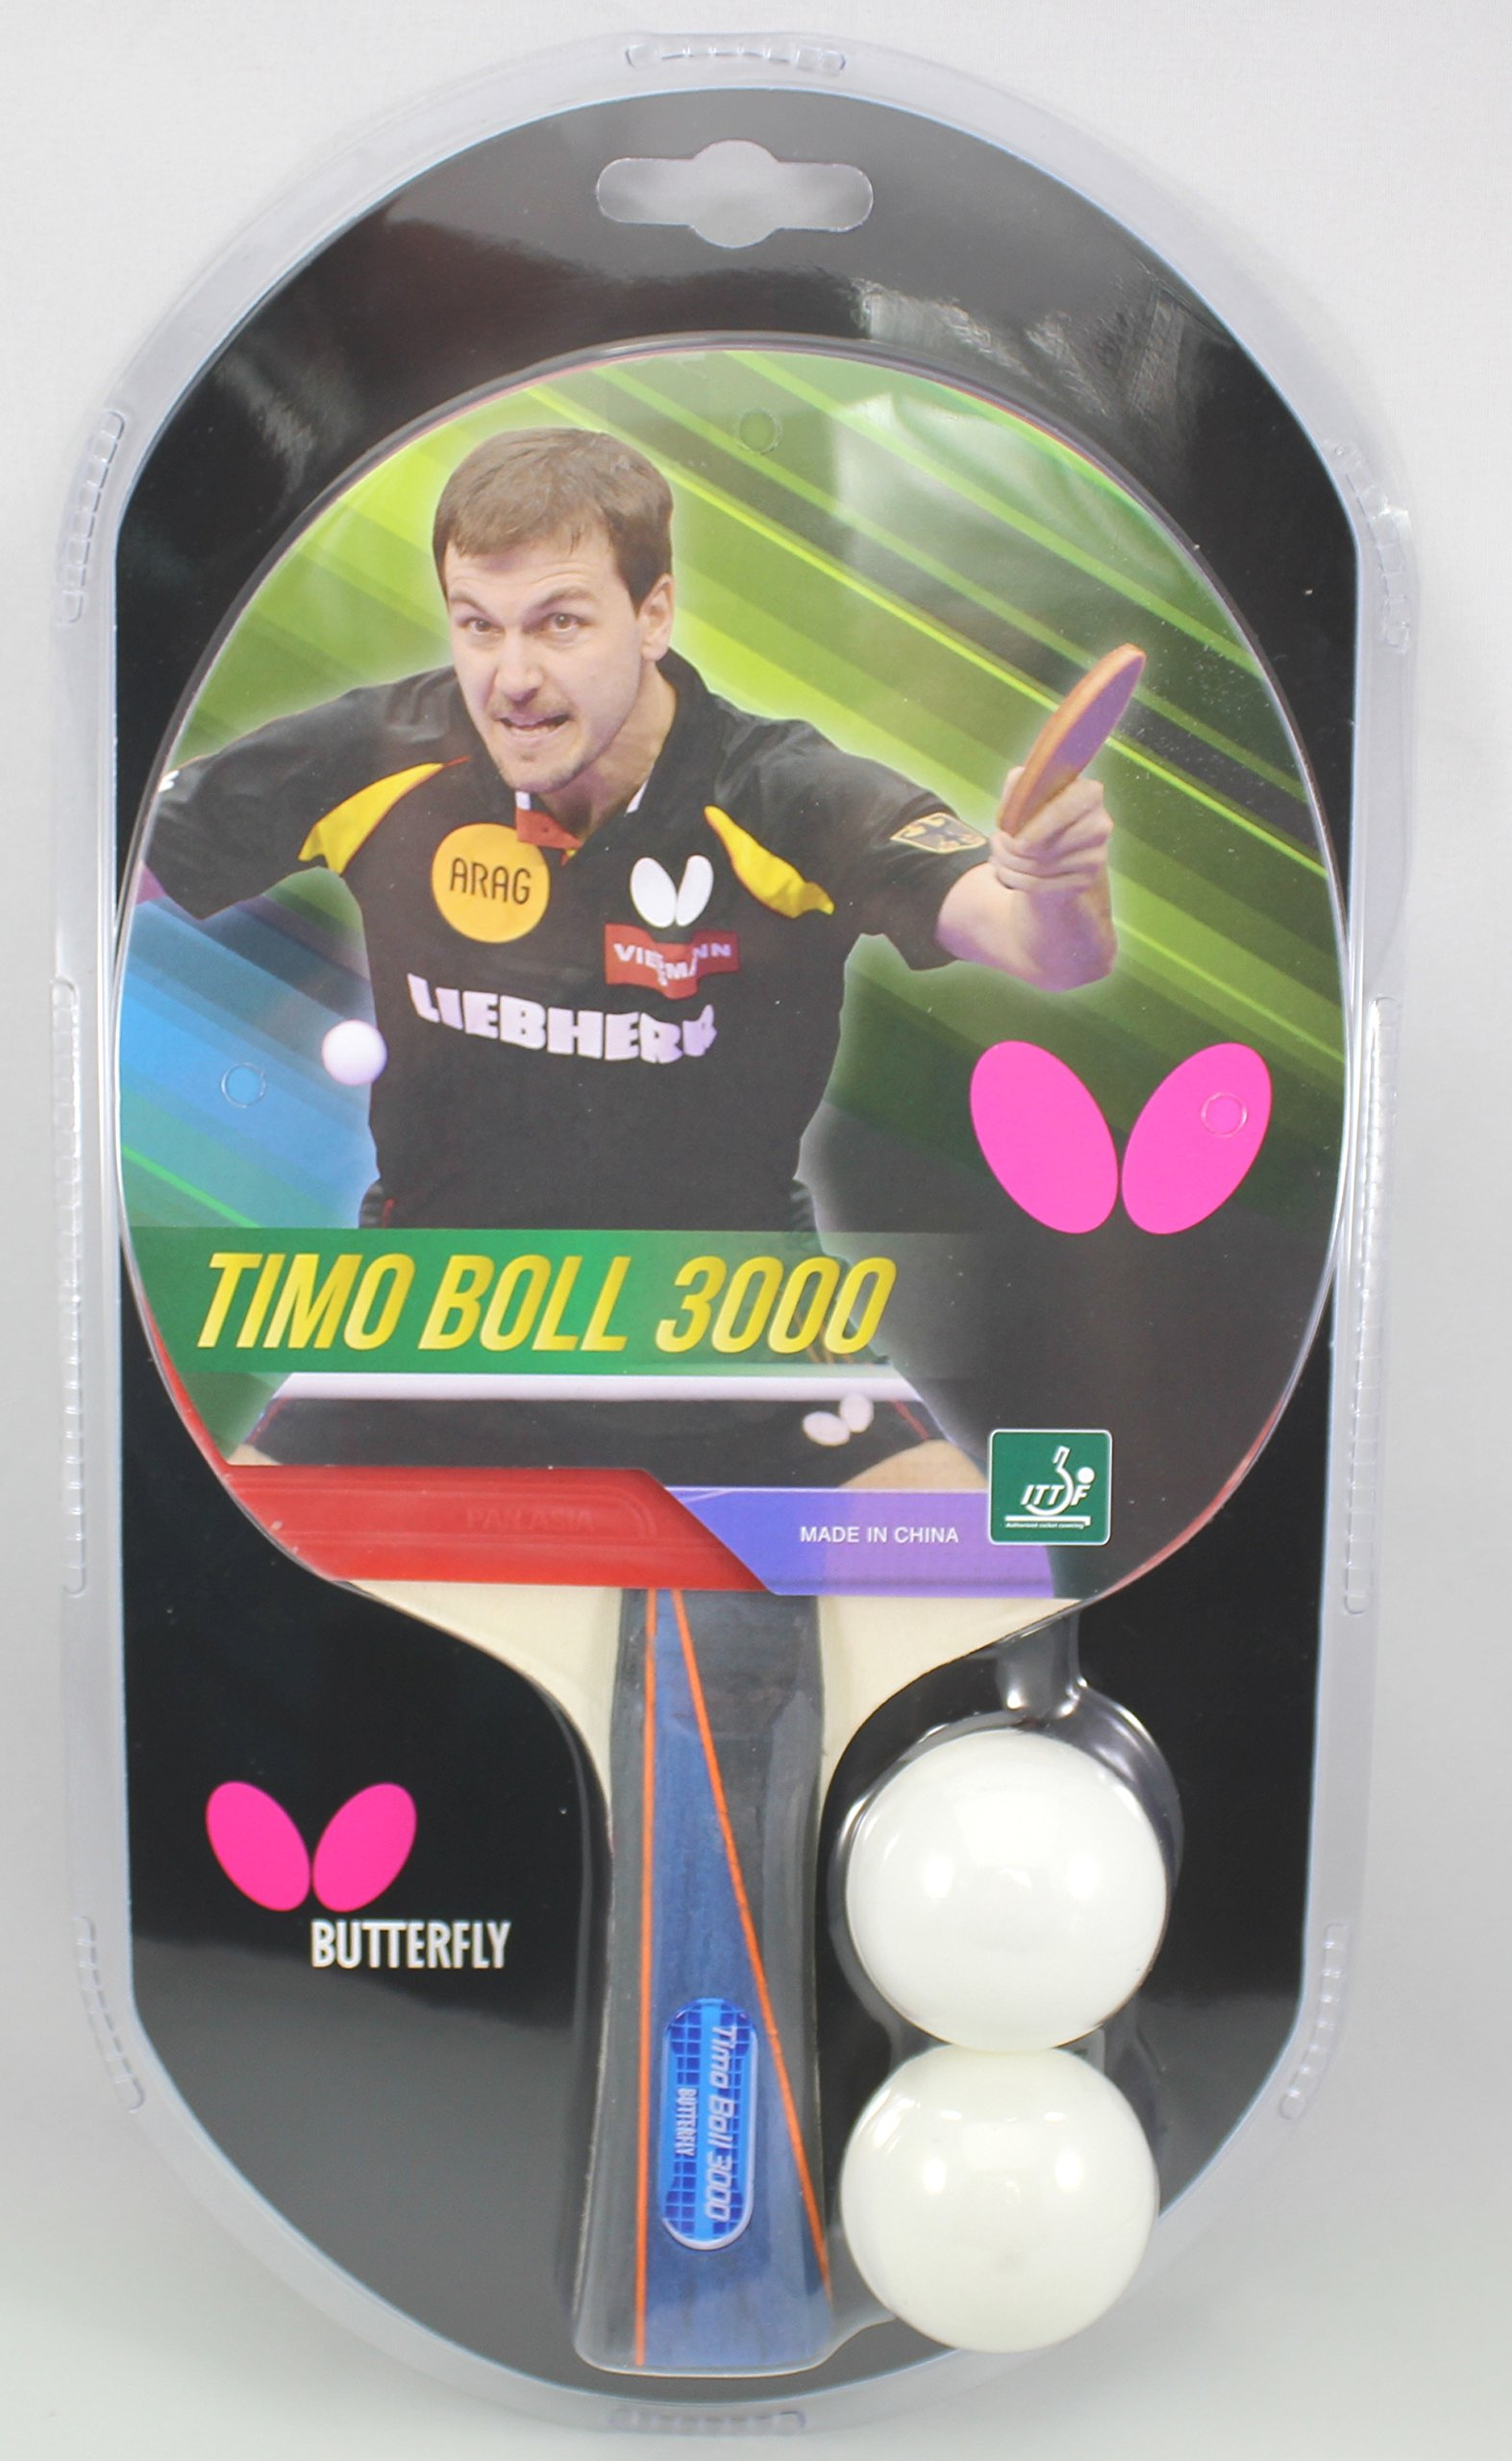 Butterfly Timo Boll Table Tennis Racket - 1 Ping Pong Paddle – 2 Ping Pong Balls - Sponge and Rubber Ping Pong Racket - 3 Grip Color and Sponge Thickness Models - ITTF Approved For Table Tennis Tournaments